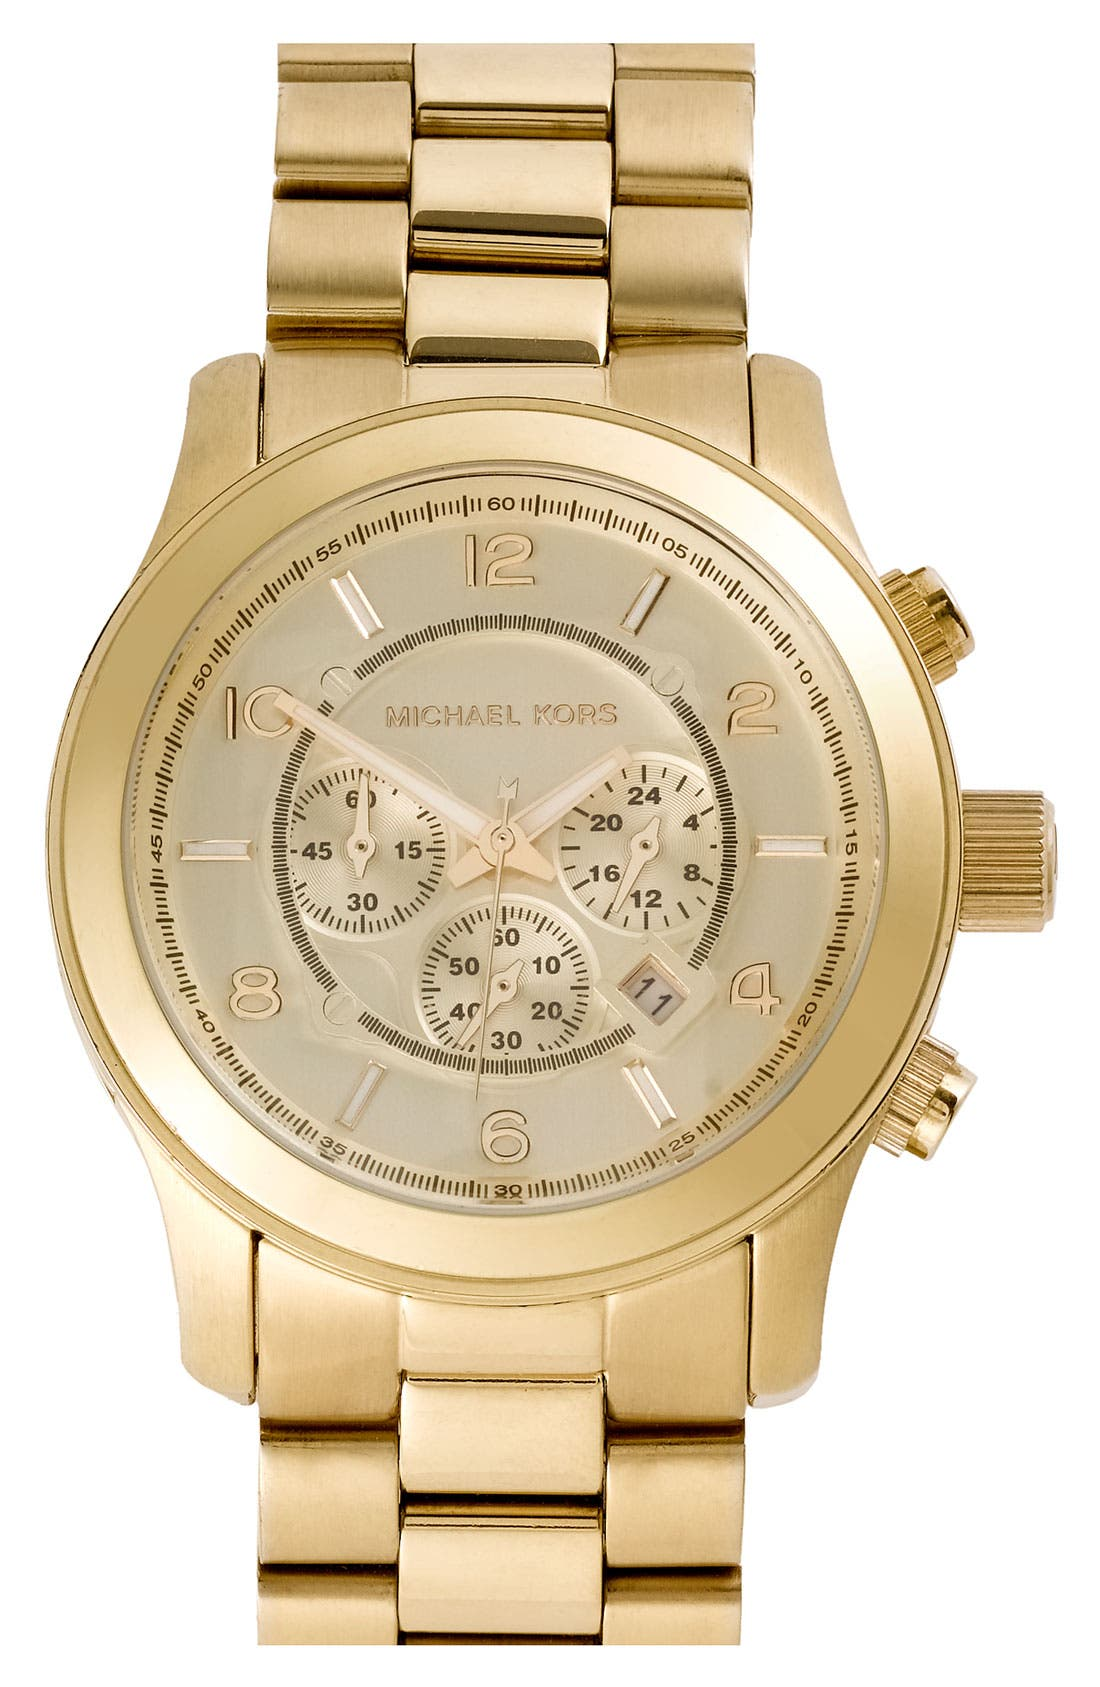 MICHAEL KORS 'Large Runway' Chronograph Bracelet Watch, 45mm, Main, color, GOLD